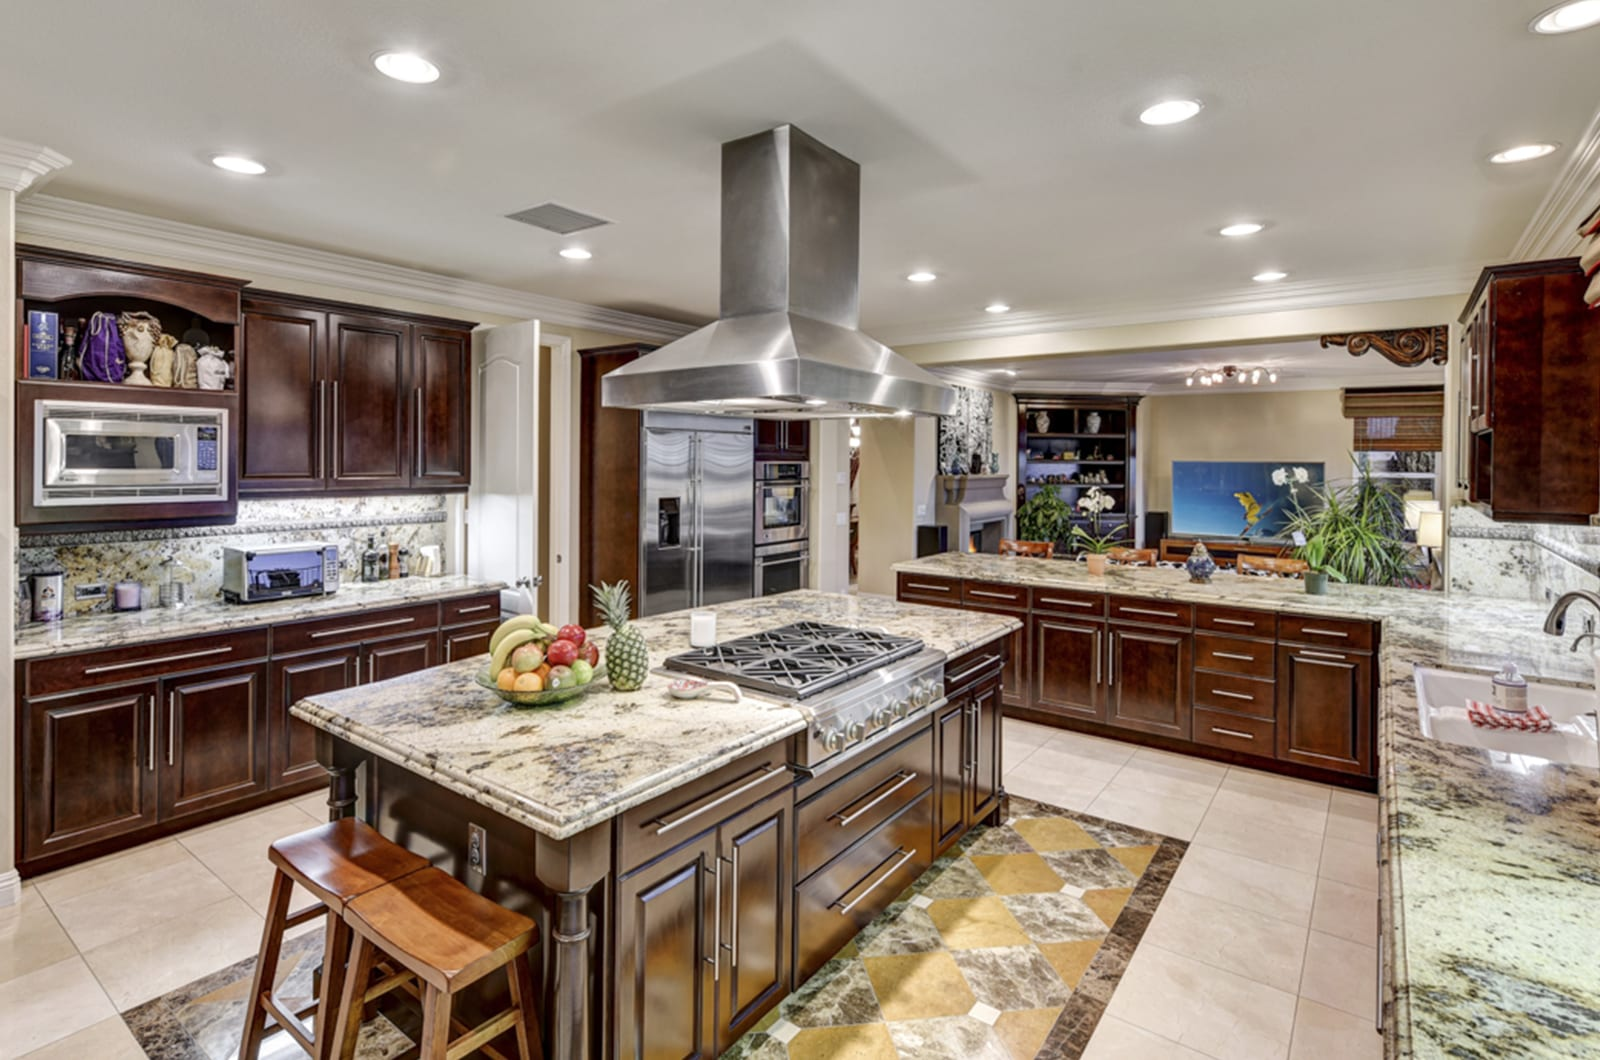 feat real estate photography services los angeles